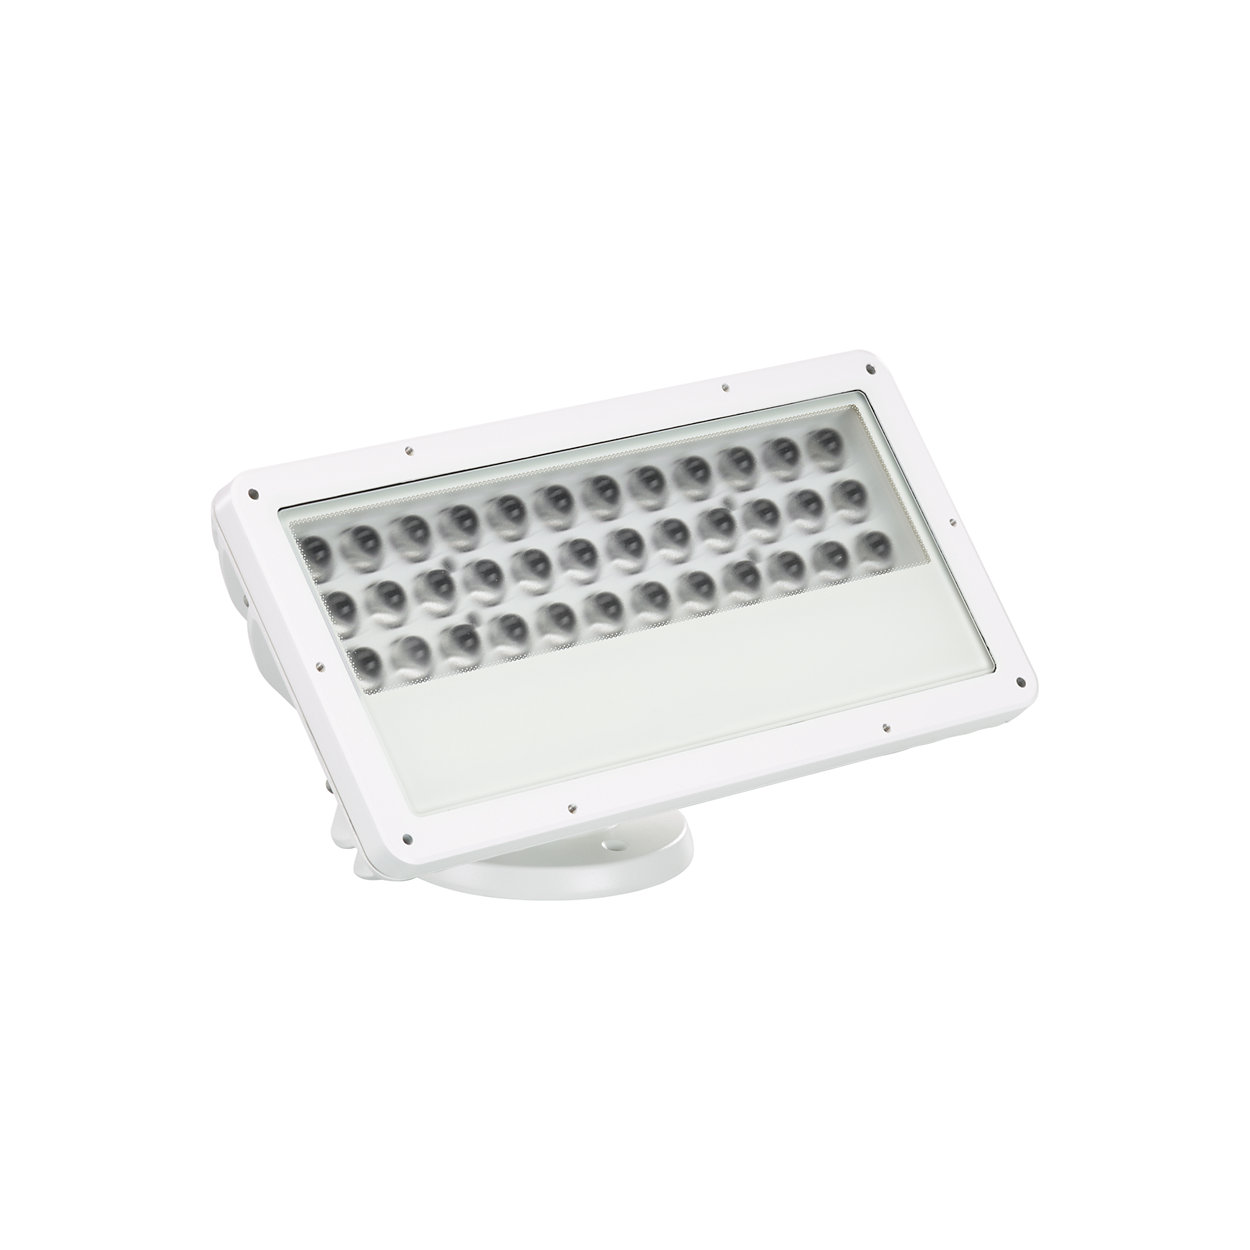 eW Blast Powercore gen4 - Customizable exterior LED wash fixture with solid white light